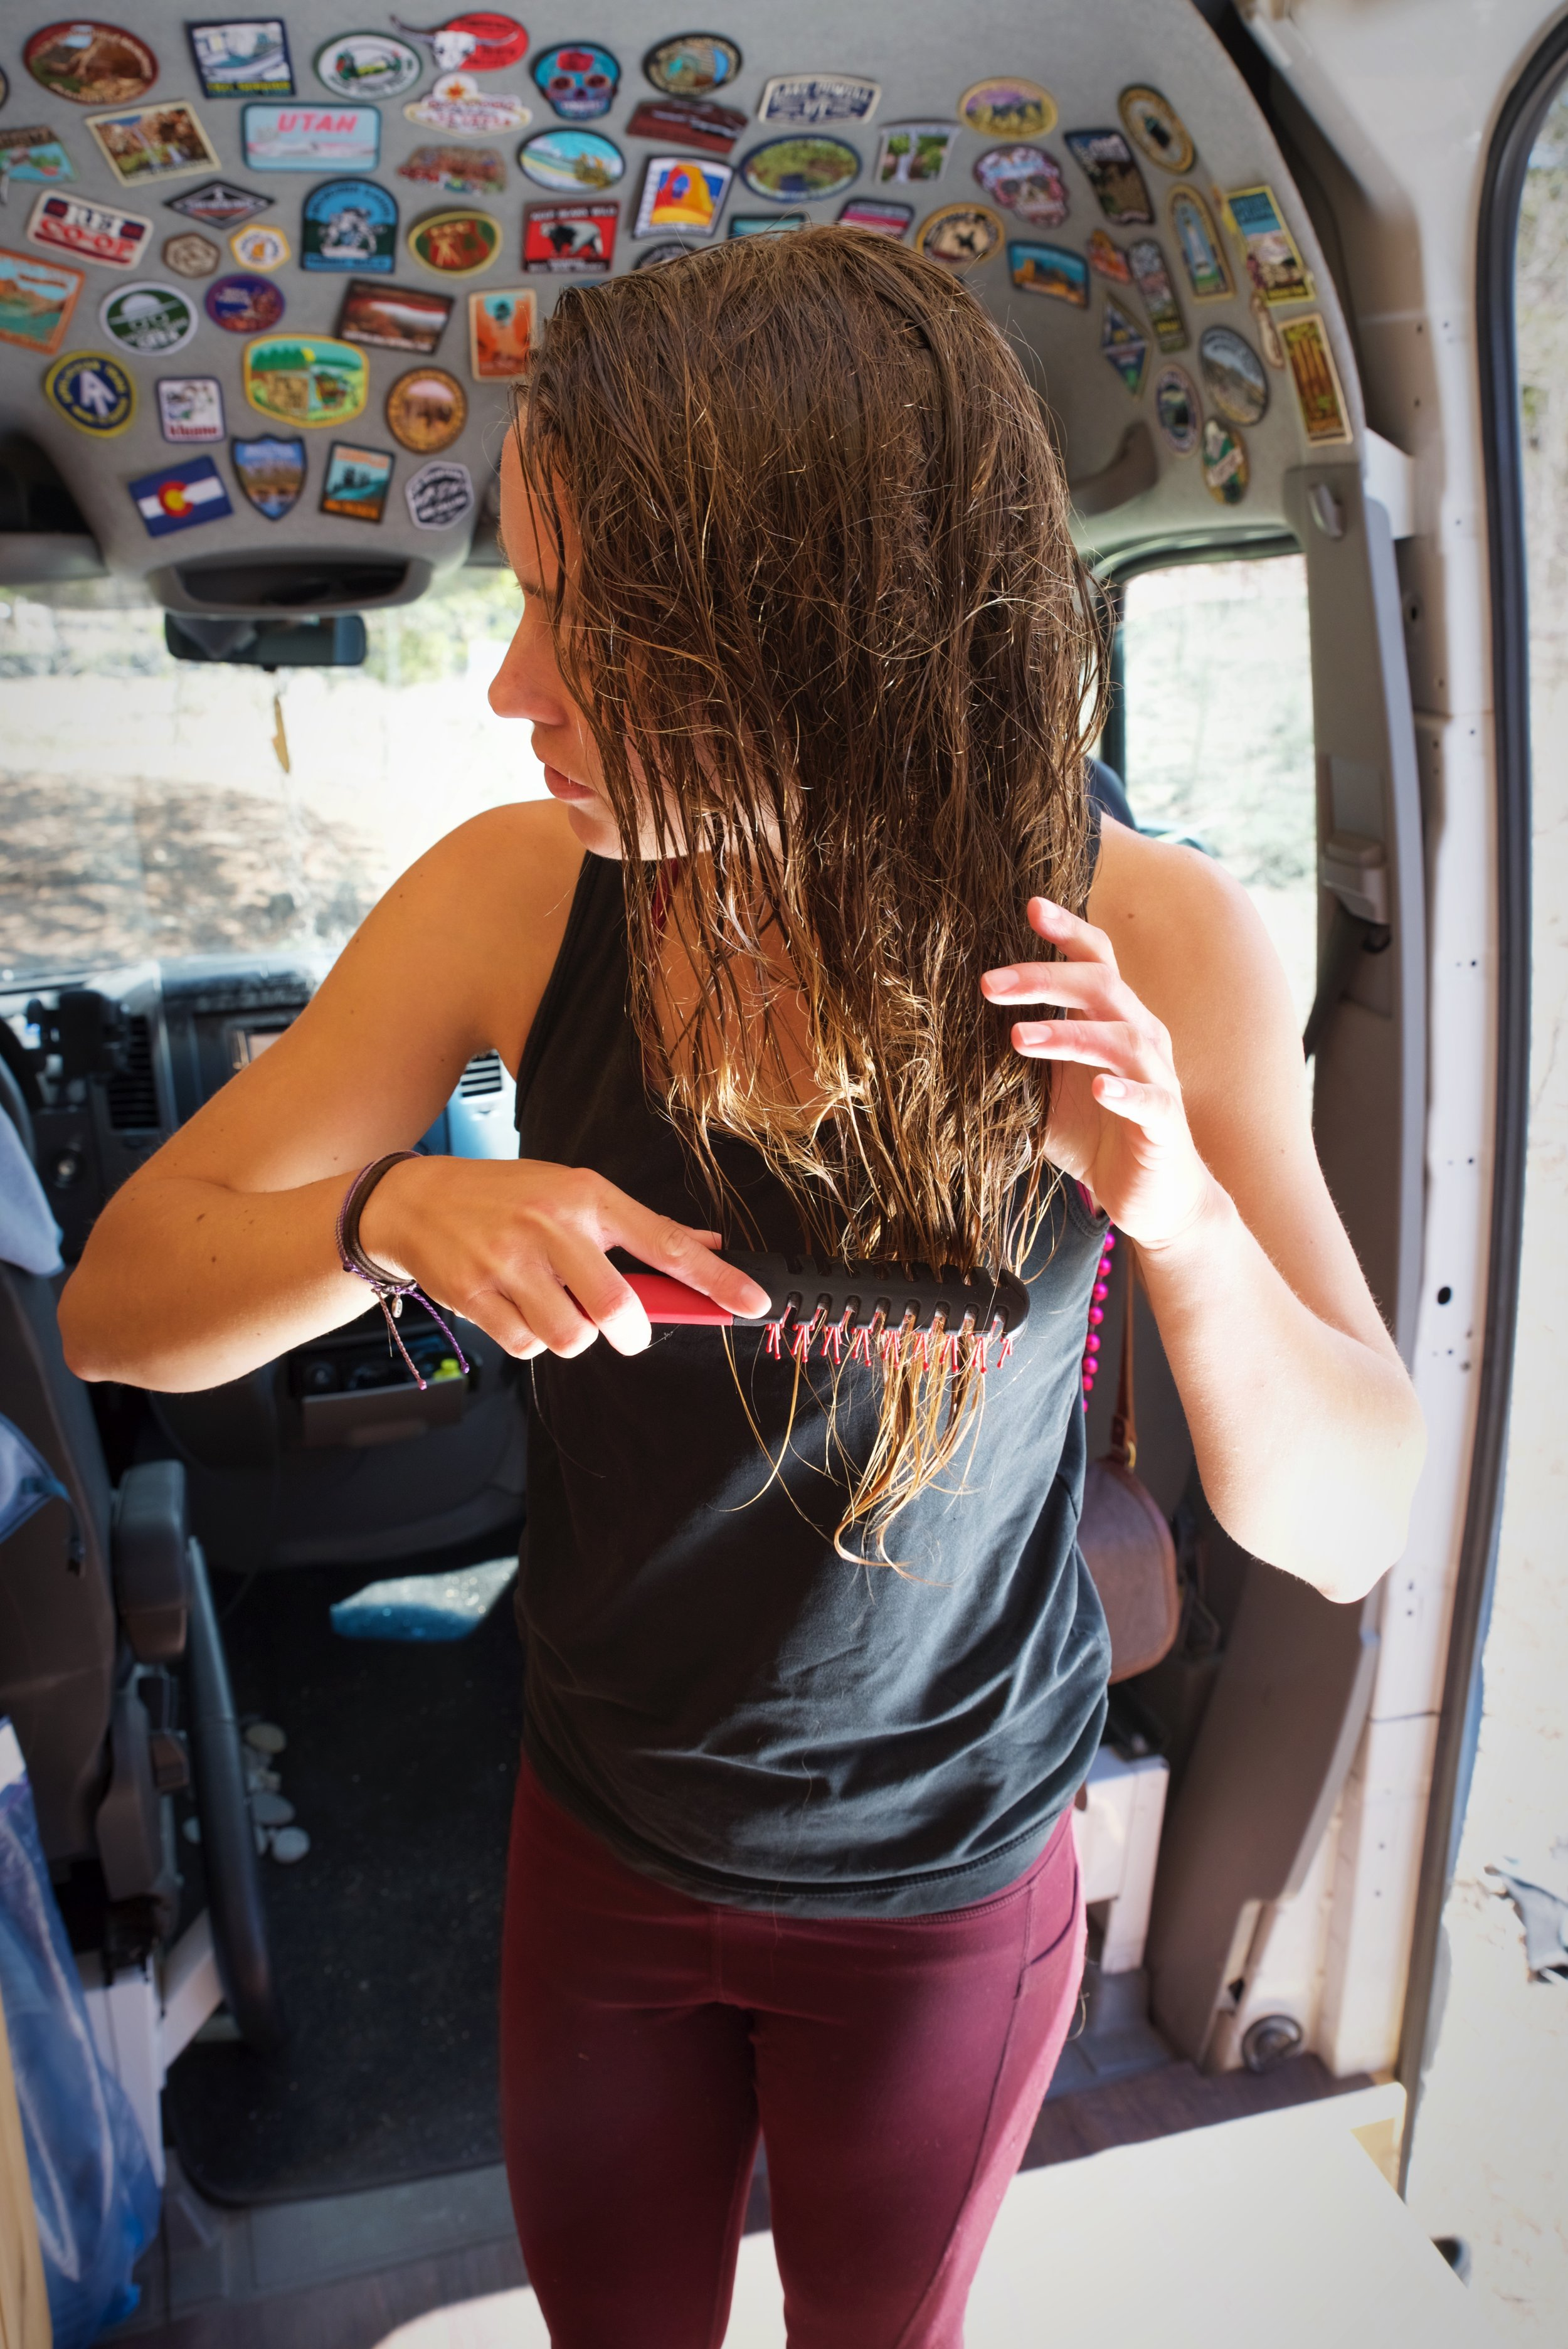 I can wash my hair in our van using only about a half gallon of water.